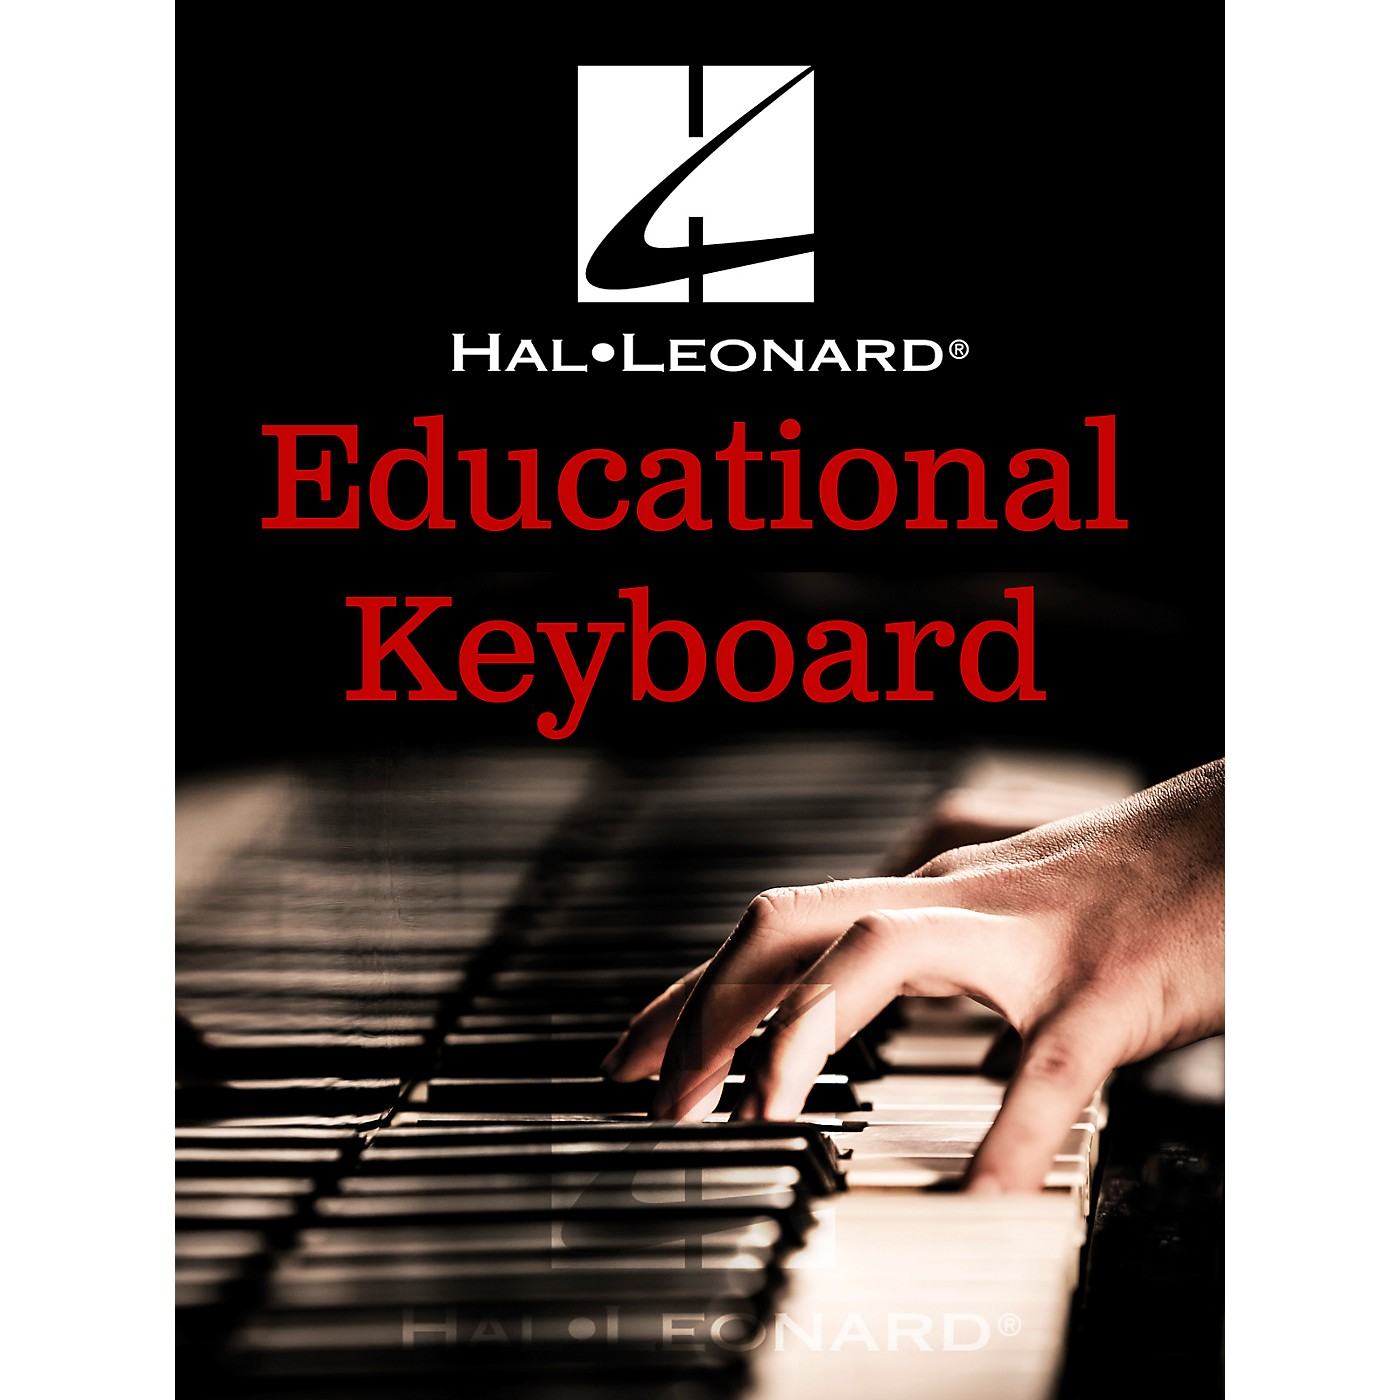 Hal Leonard Tritone Music Street - Book 2 Piano Method Series Softcover Written by Various Authors thumbnail